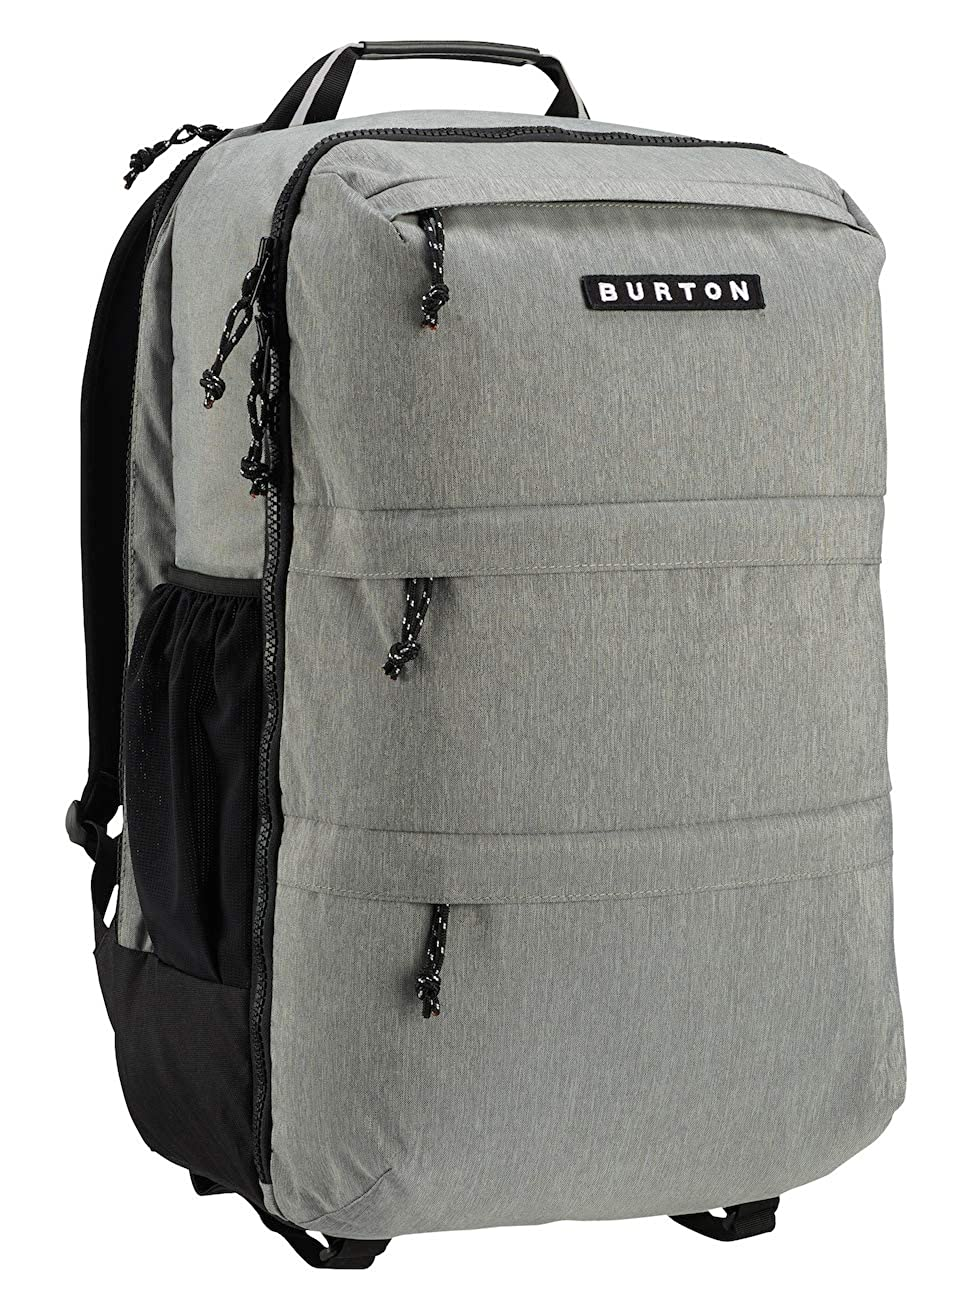 [バートン] リュック TRAVERSE PACK [35L] B072DXKC8Q GREY HEATHER